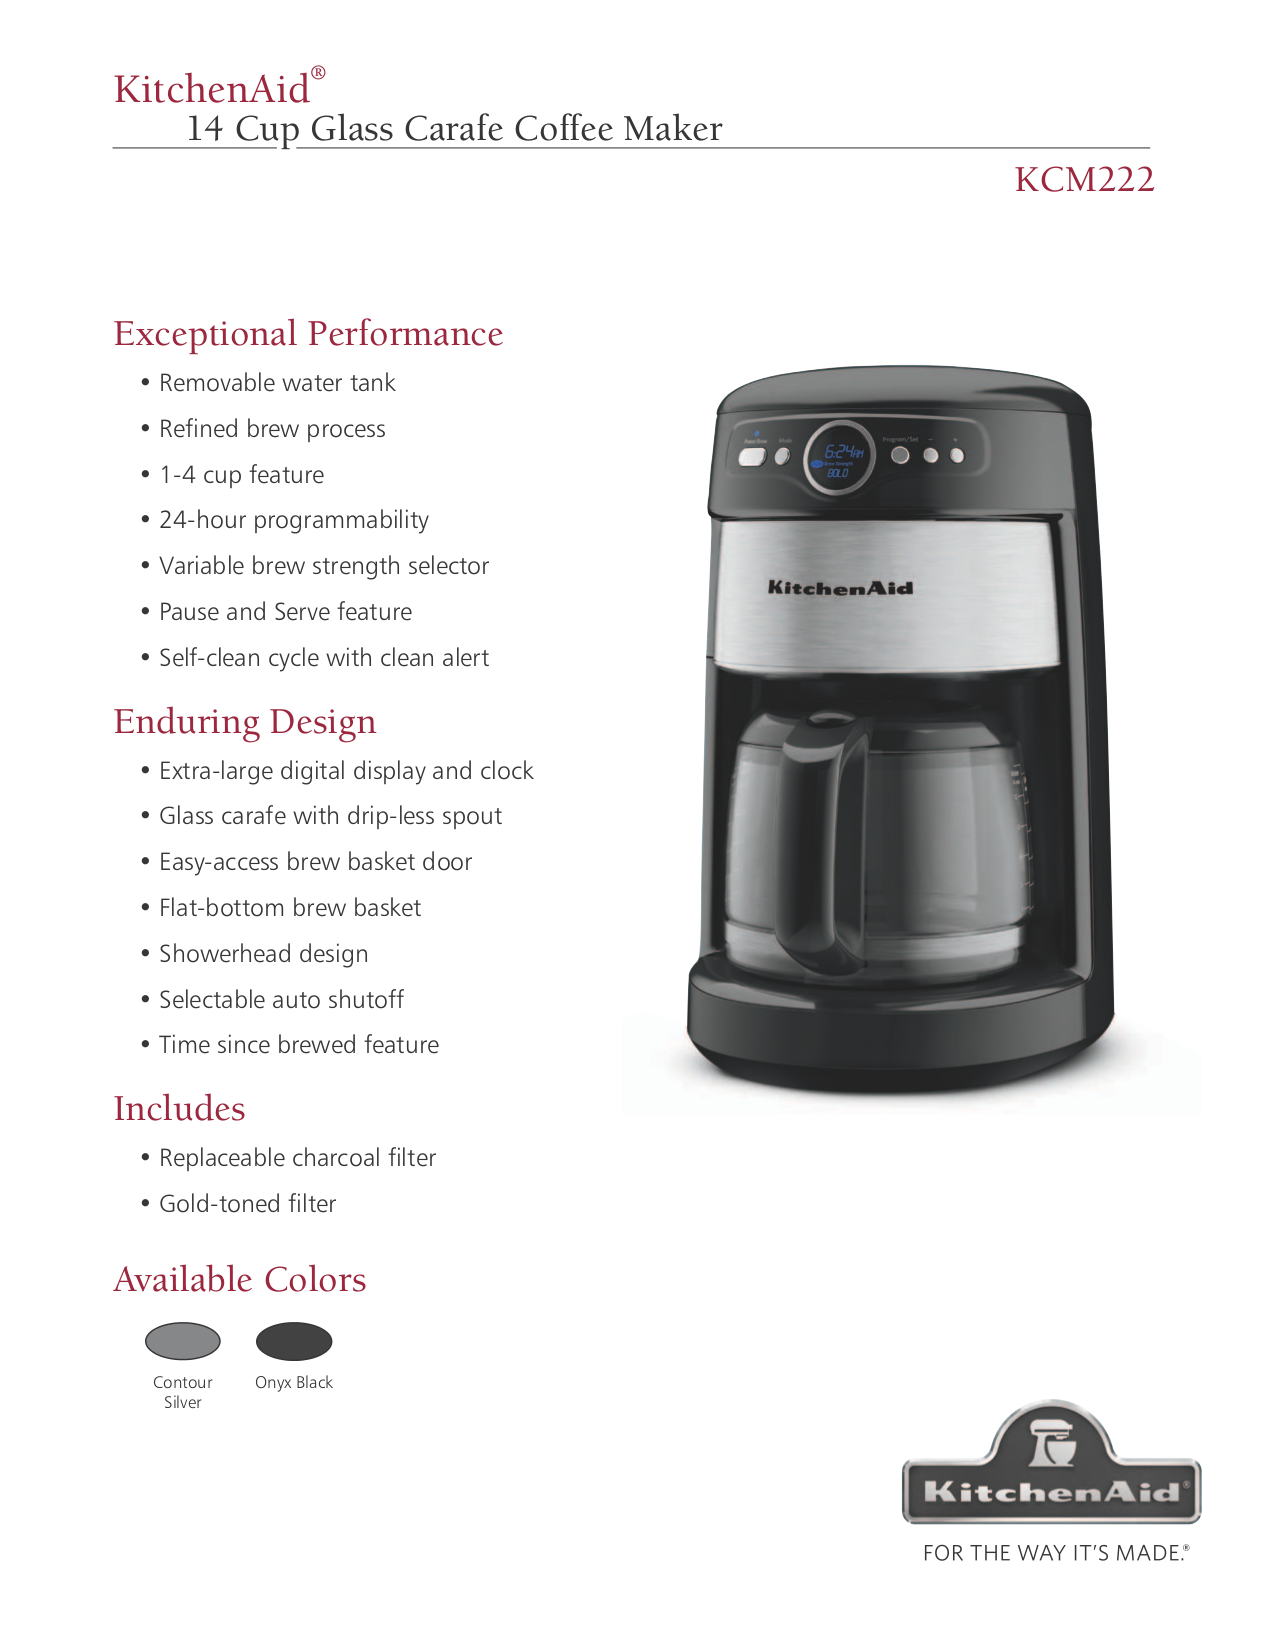 Kitchenaid Coffee Maker Operating Manual : Download free pdf for KitchenAid KCM222 Coffee Maker manual